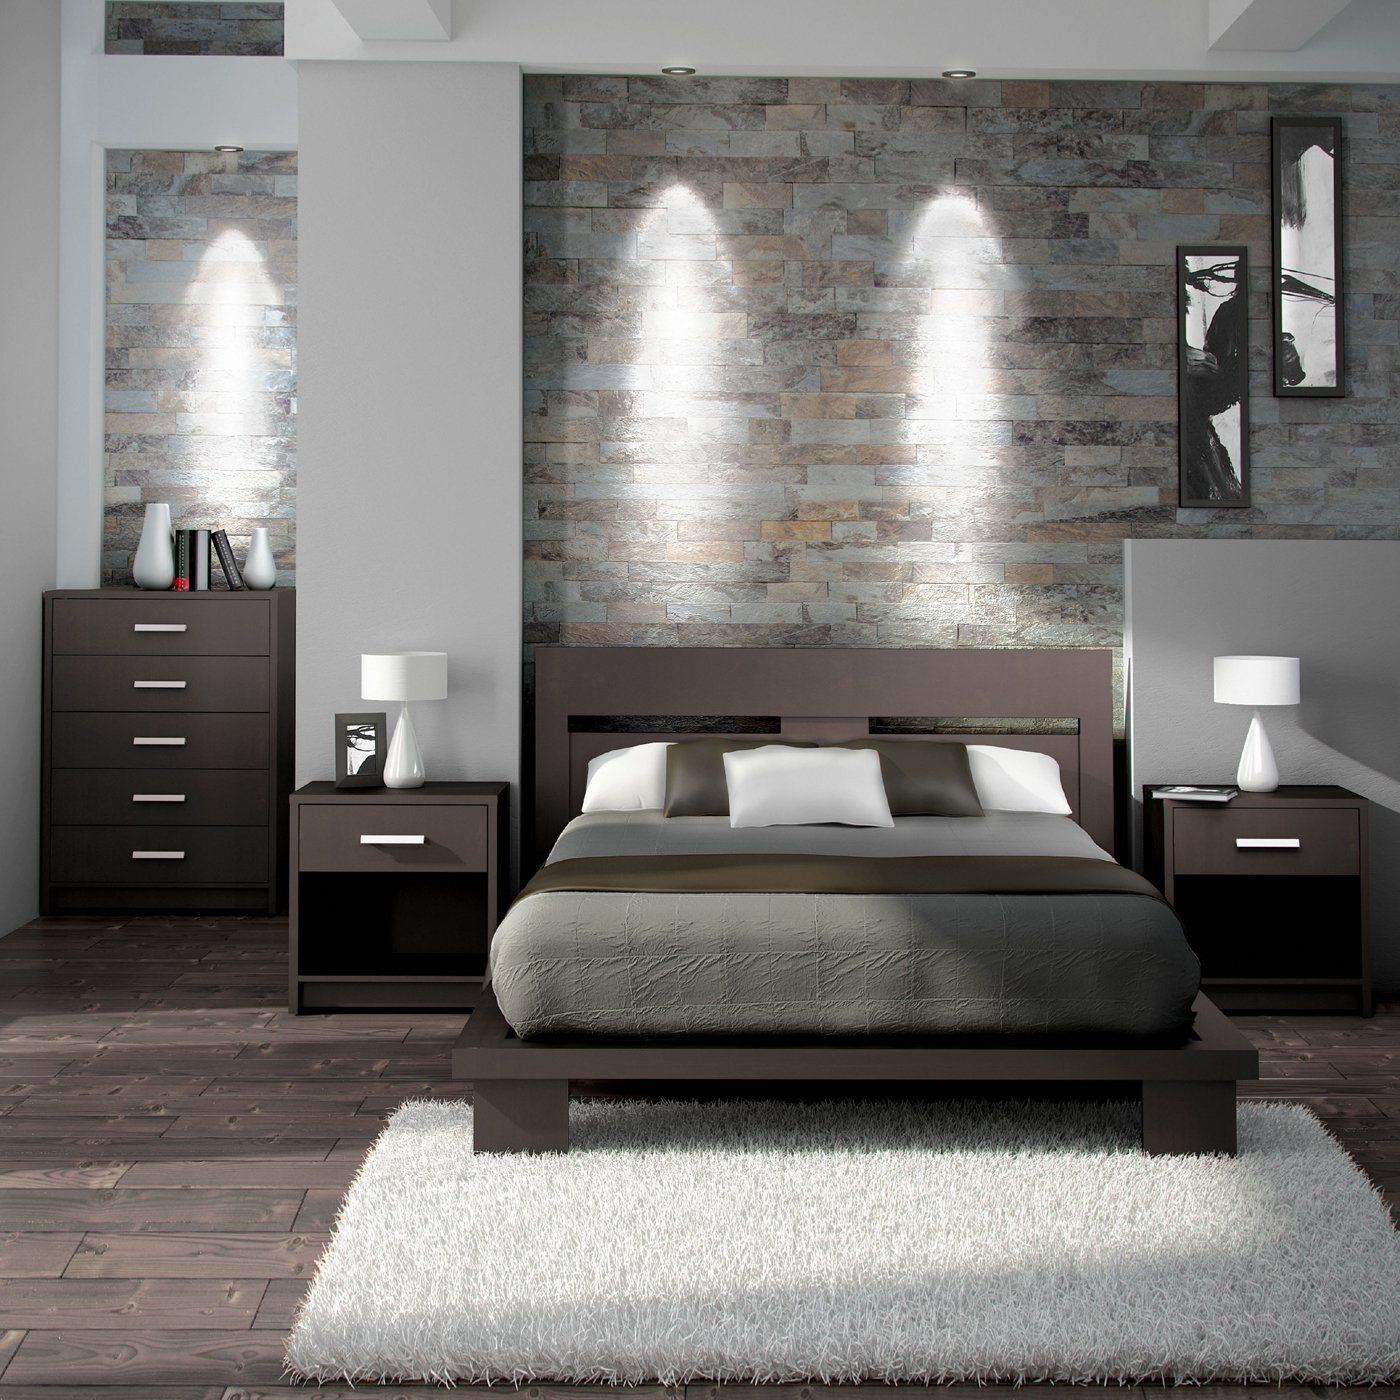 Contemporary Bedroom Lighting Bedroom Interior For Couples Black And White Tiles In Bedroom Bedroom Furniture Black